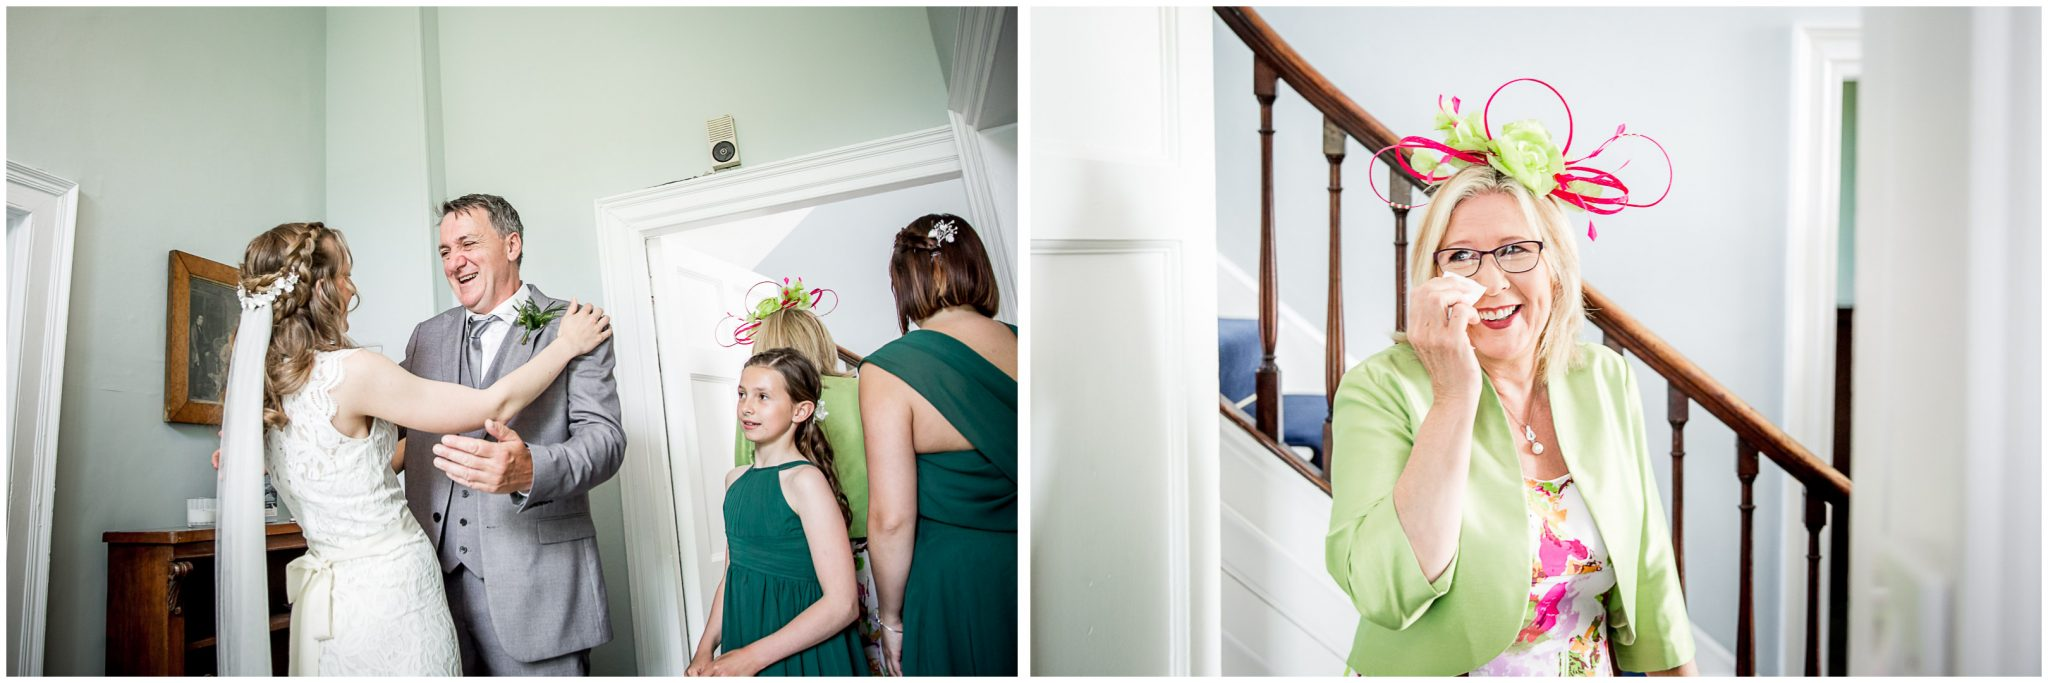 Colour photos of bride and family before ceremony